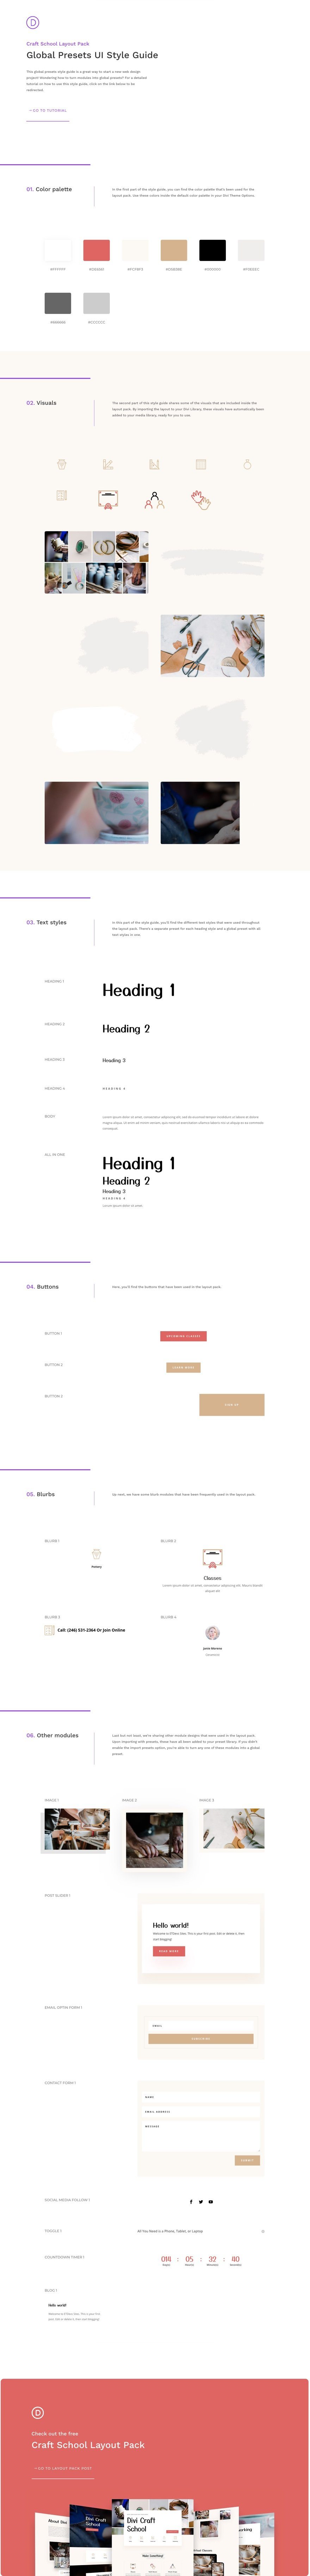 divi craft school global presets style guide